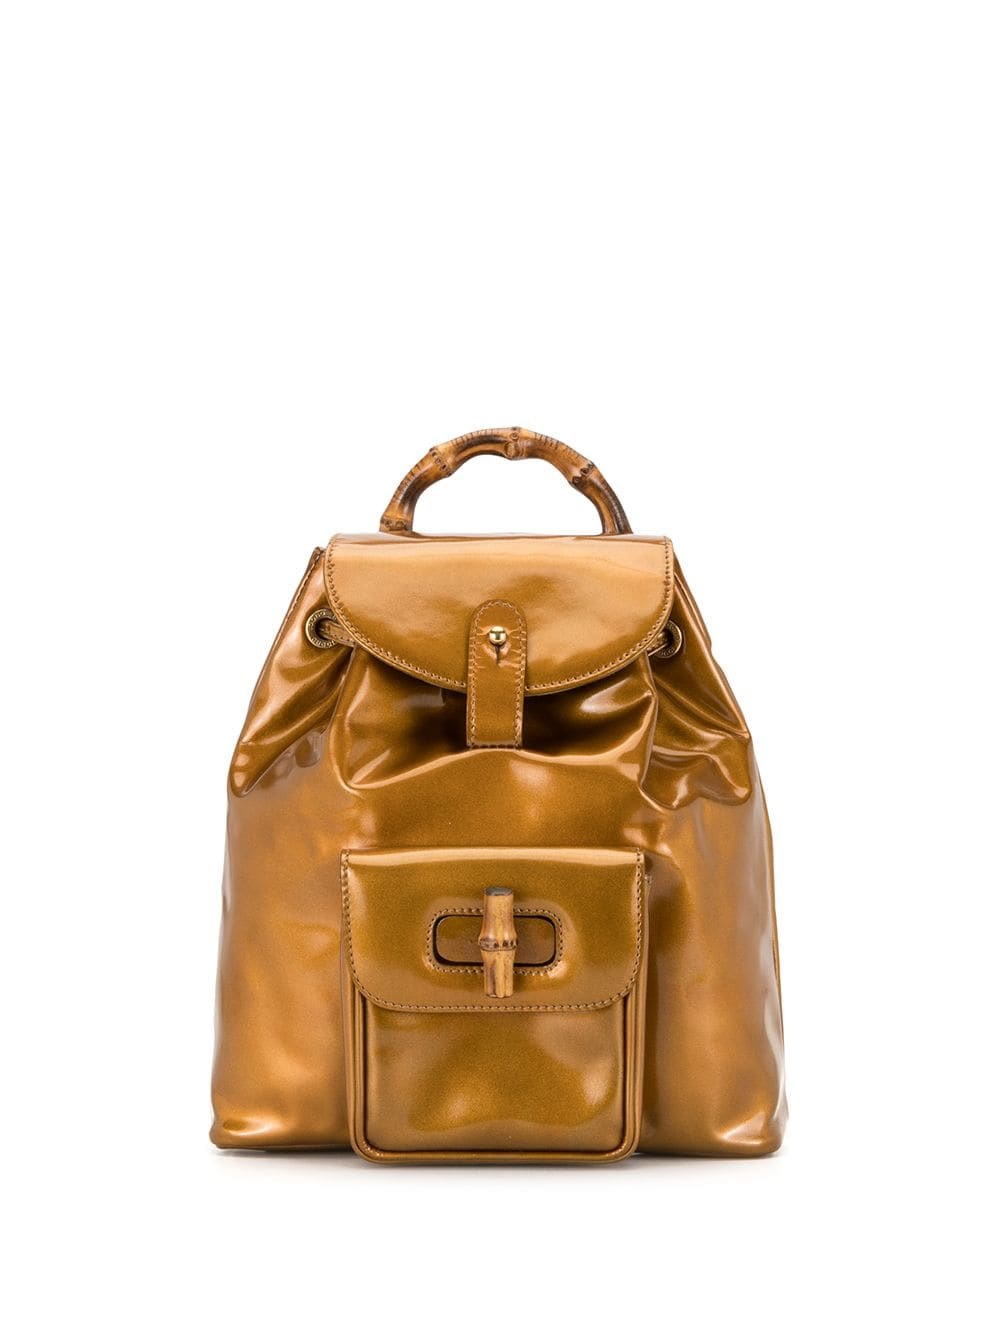 Gucci Pre-Owned Bamboo Rucksack - Gold